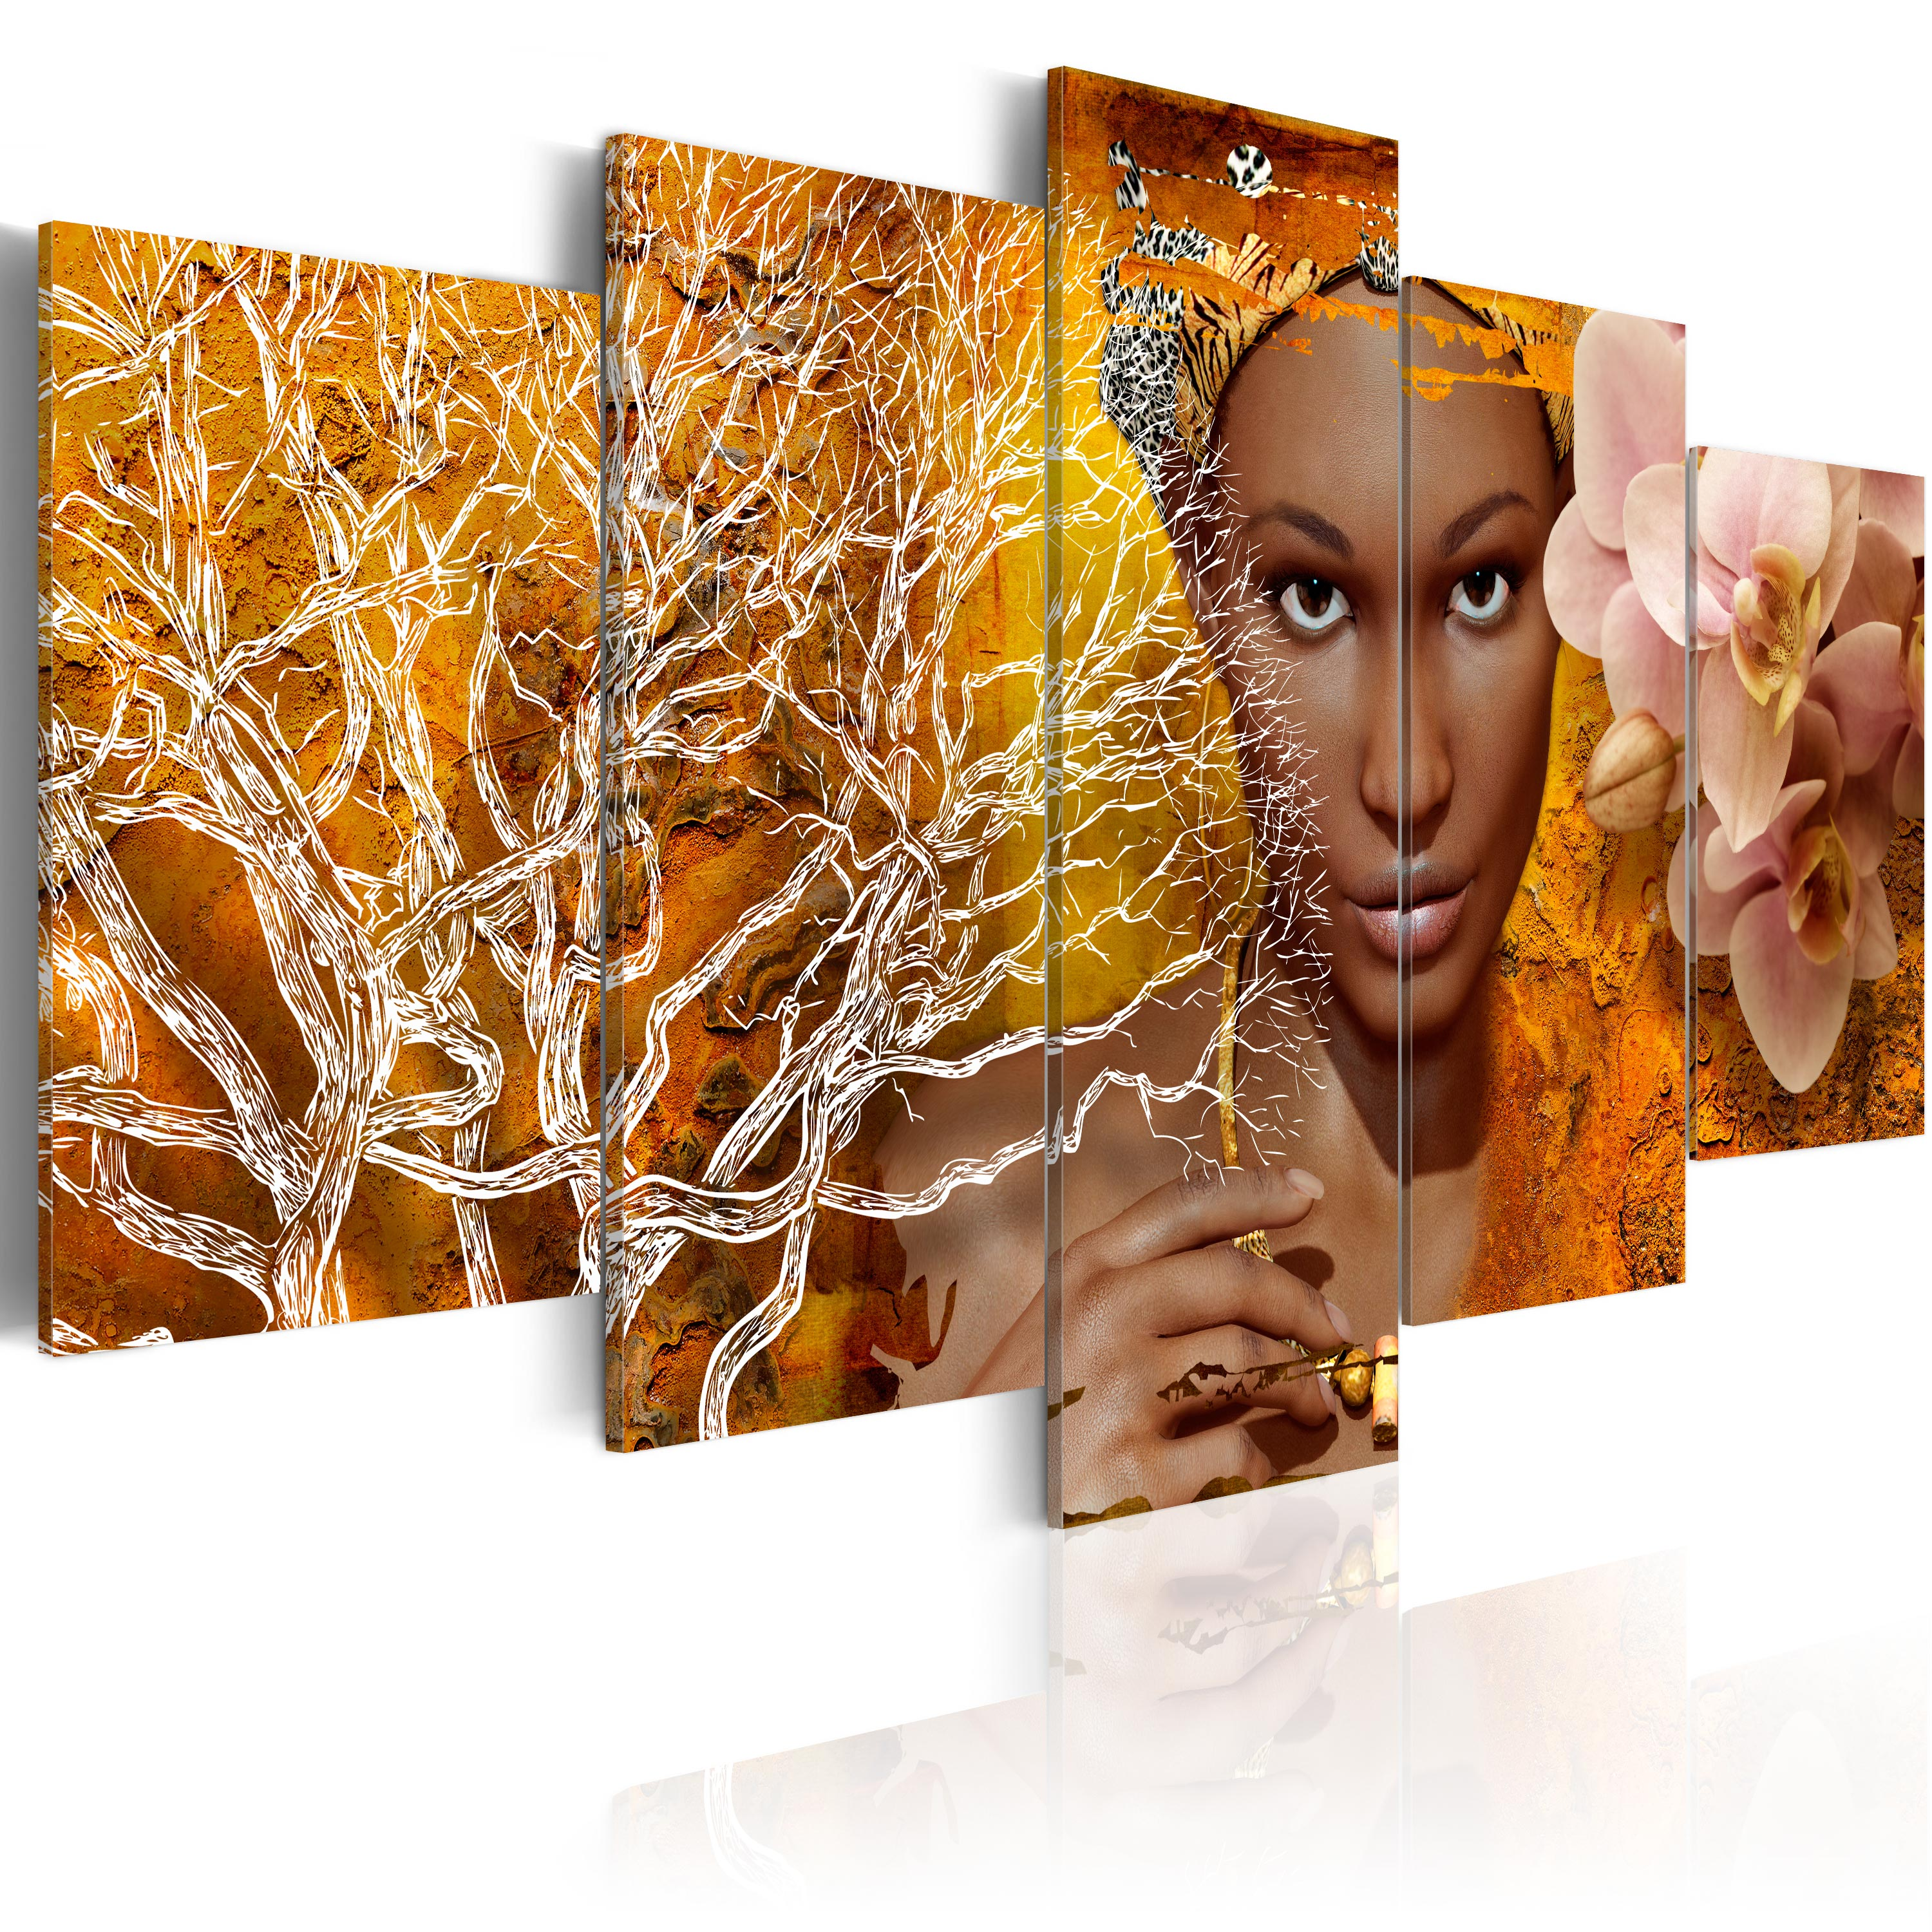 Tableau - Histoires africaines